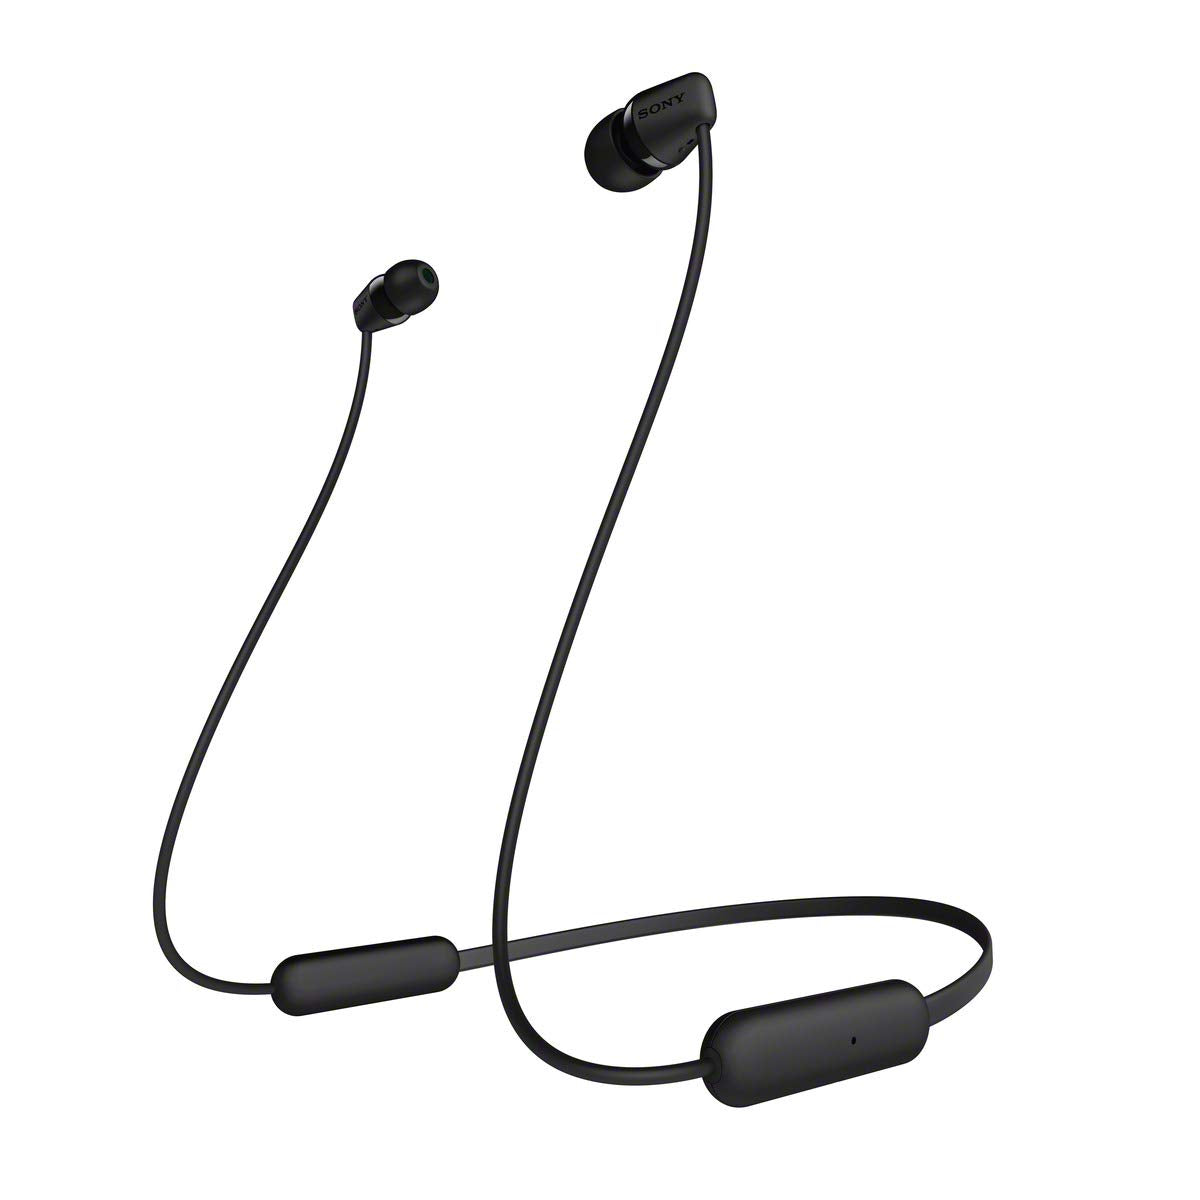 SONY WI-C200 Wireless Bluetooth Earphones - Black [Accessories]